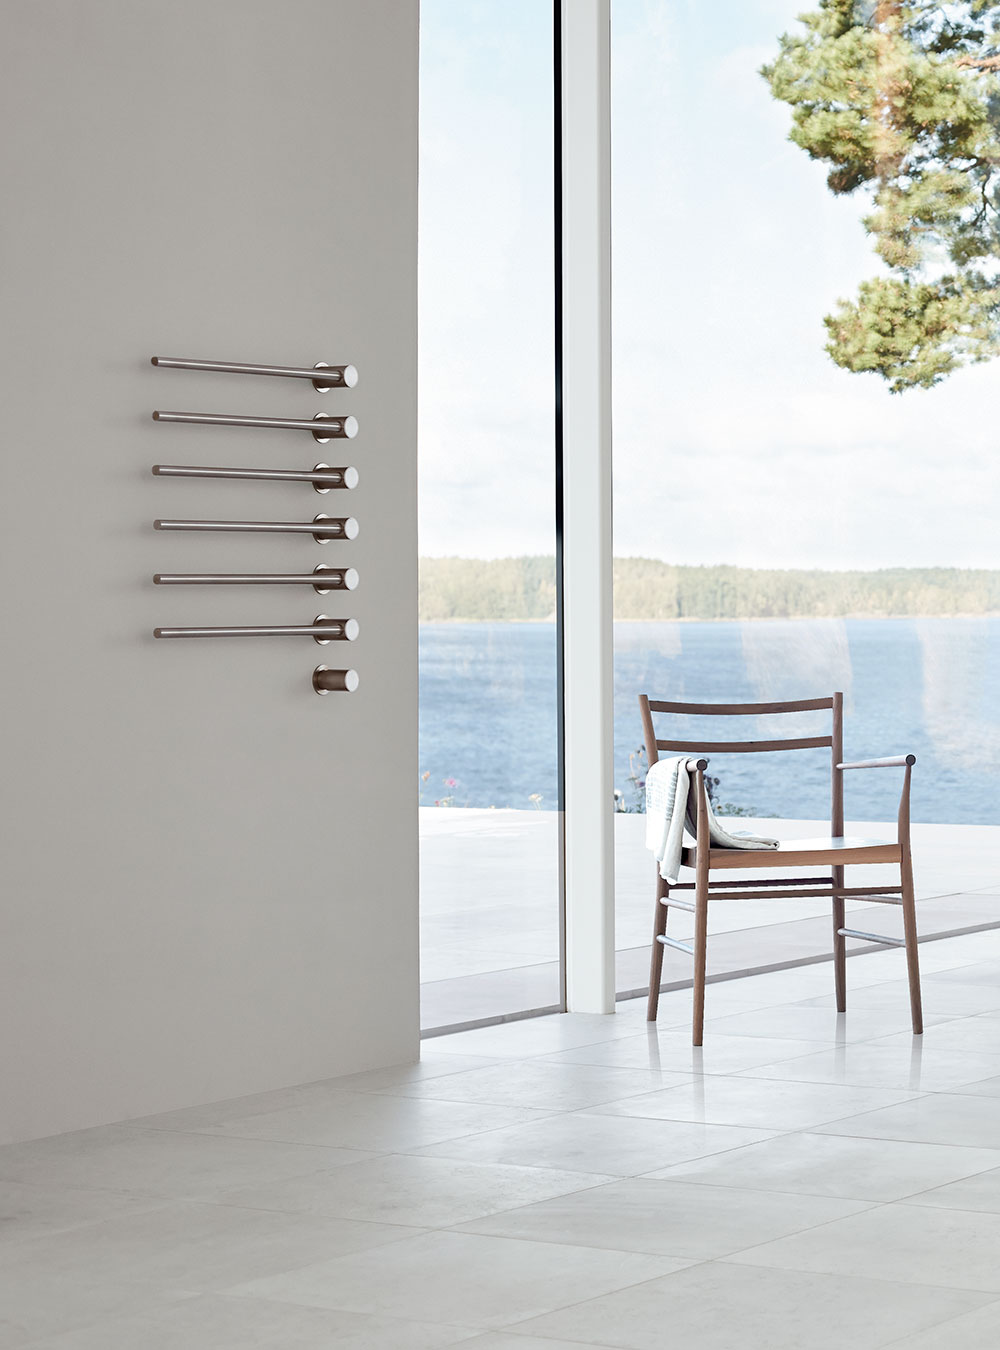 T39EL: Build-in modular electric heated towel rail for individual design solutions.A modular system of b...